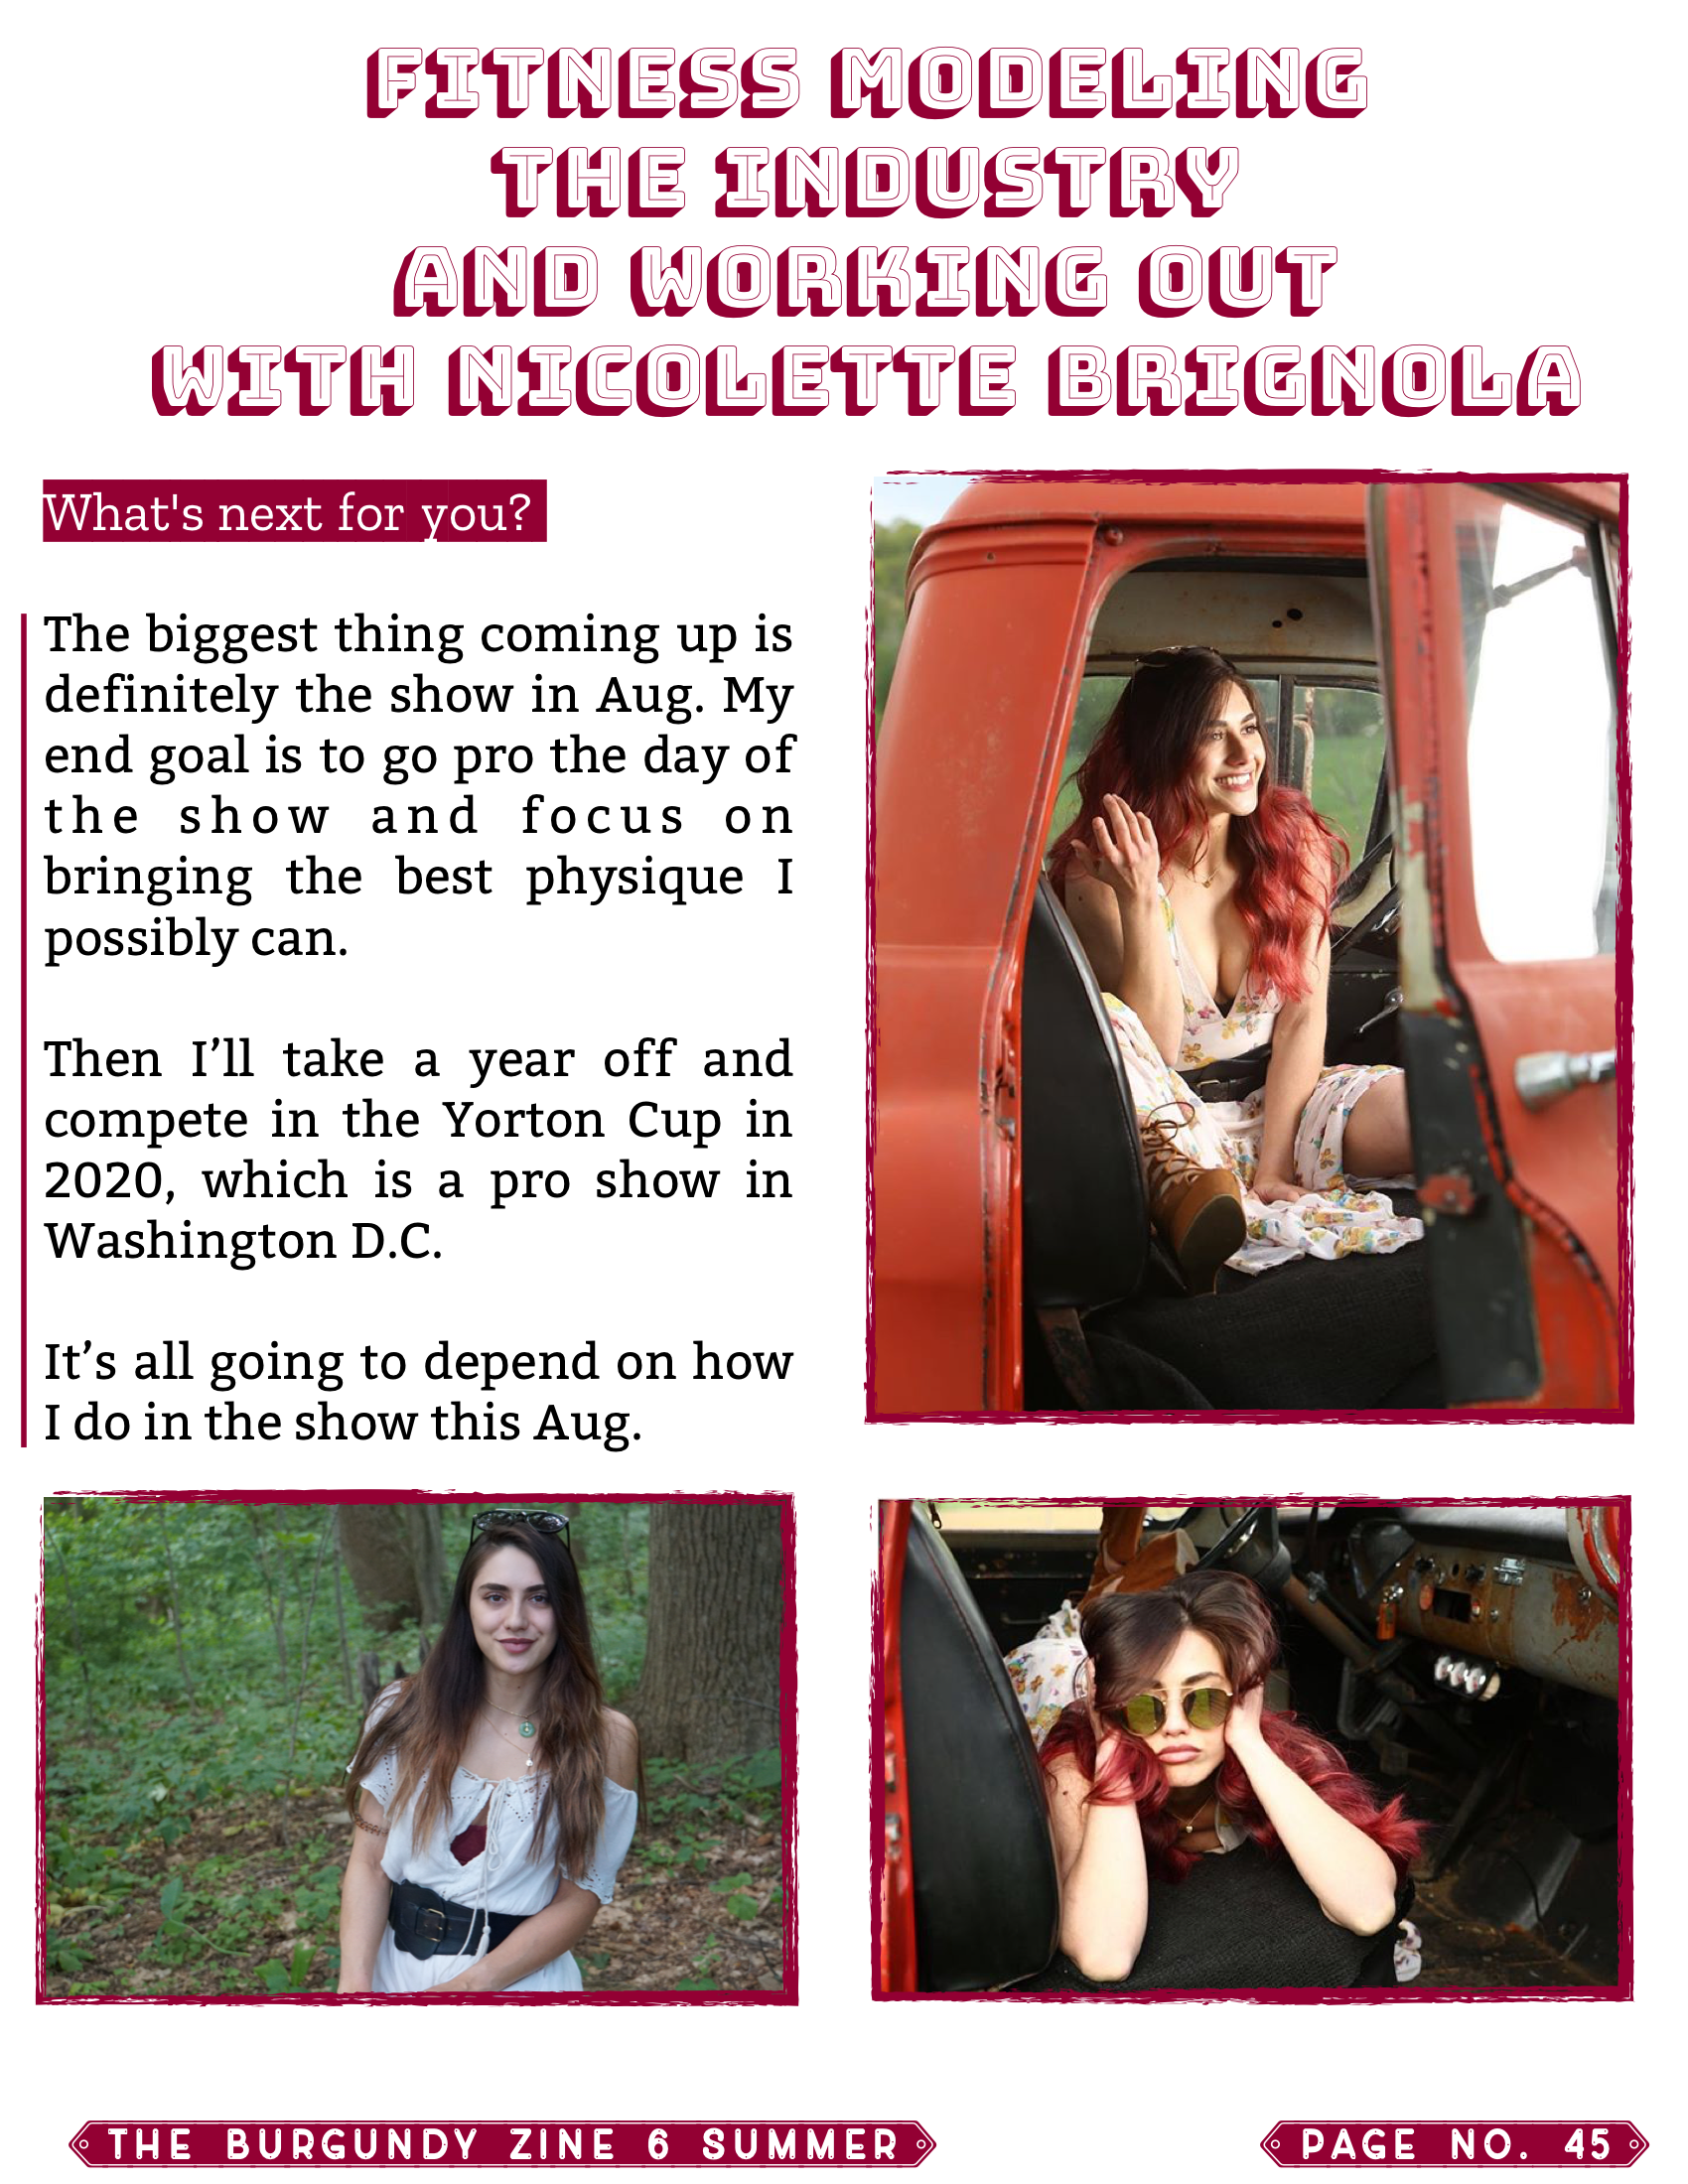 The Burgundy Zine #6: Summer Pg. 45